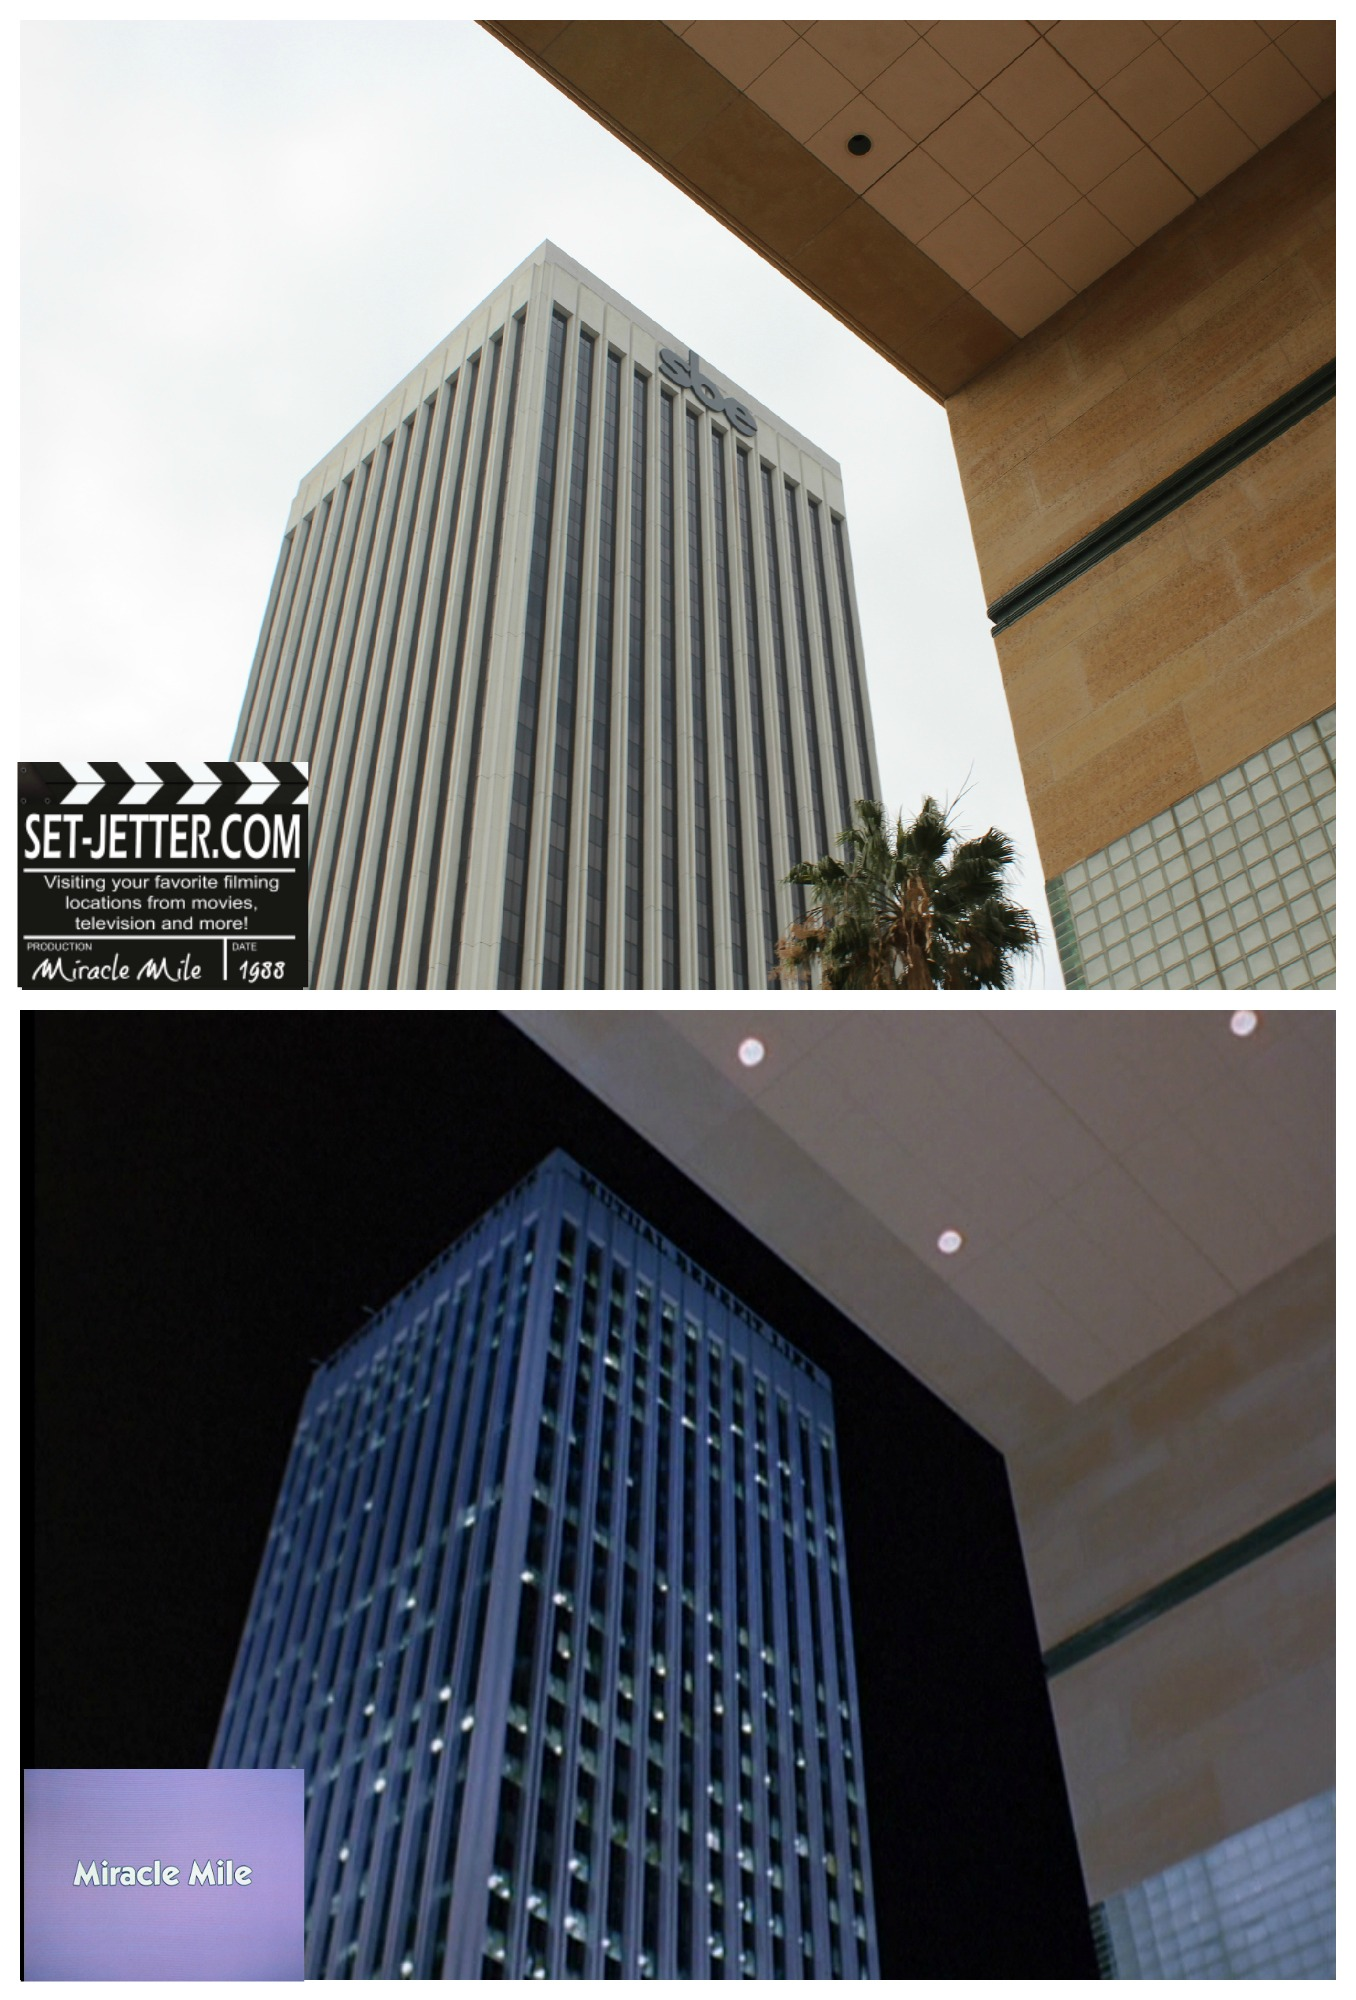 Miracle Mile comparison 28.jpg